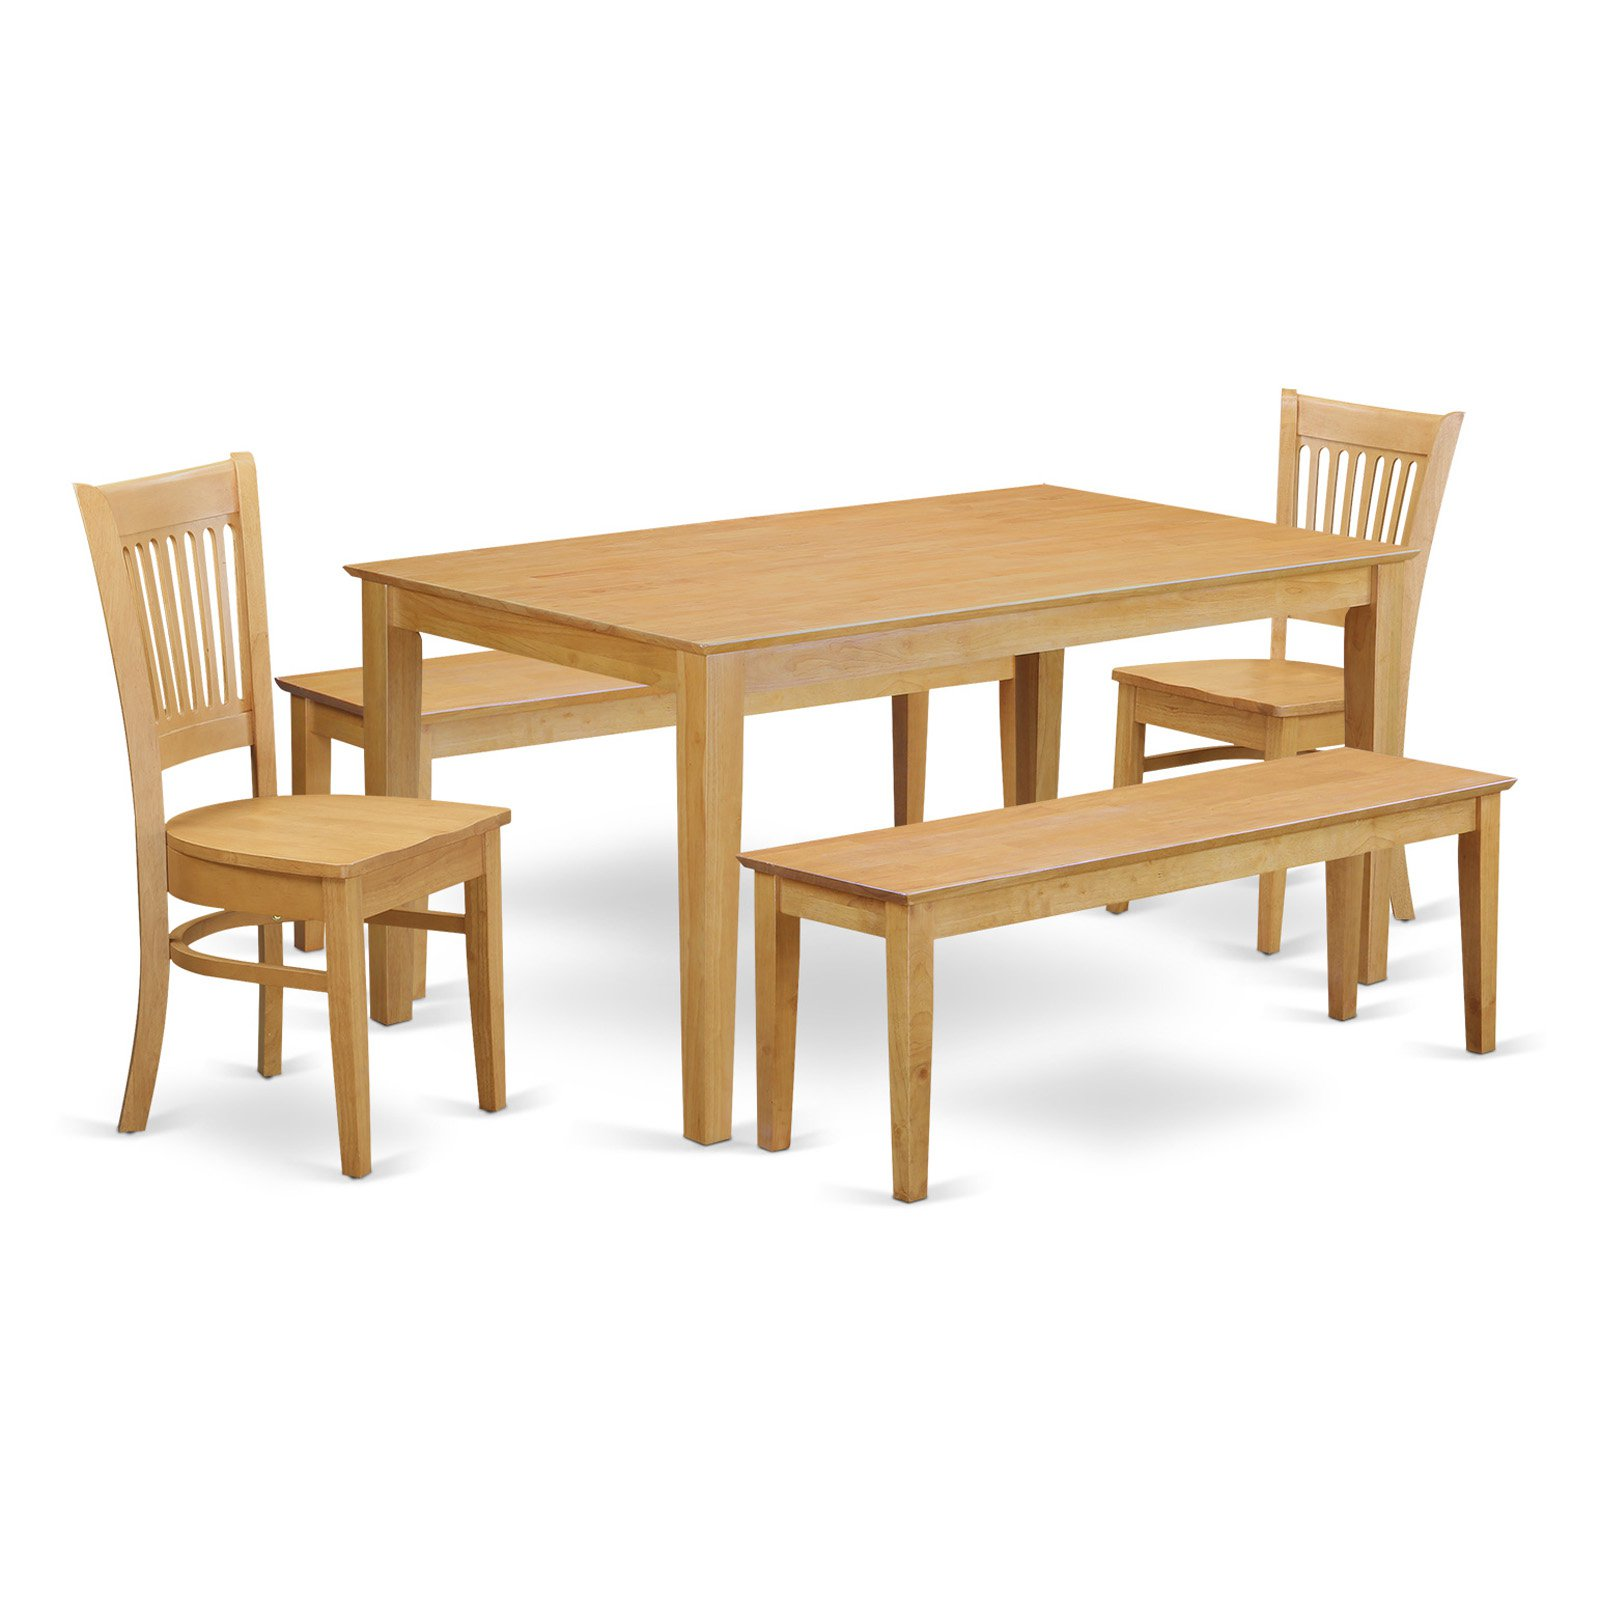 East West Furniture Capri 5 Piece Hepplewhite Modern Dining Table Set With  2 Benches